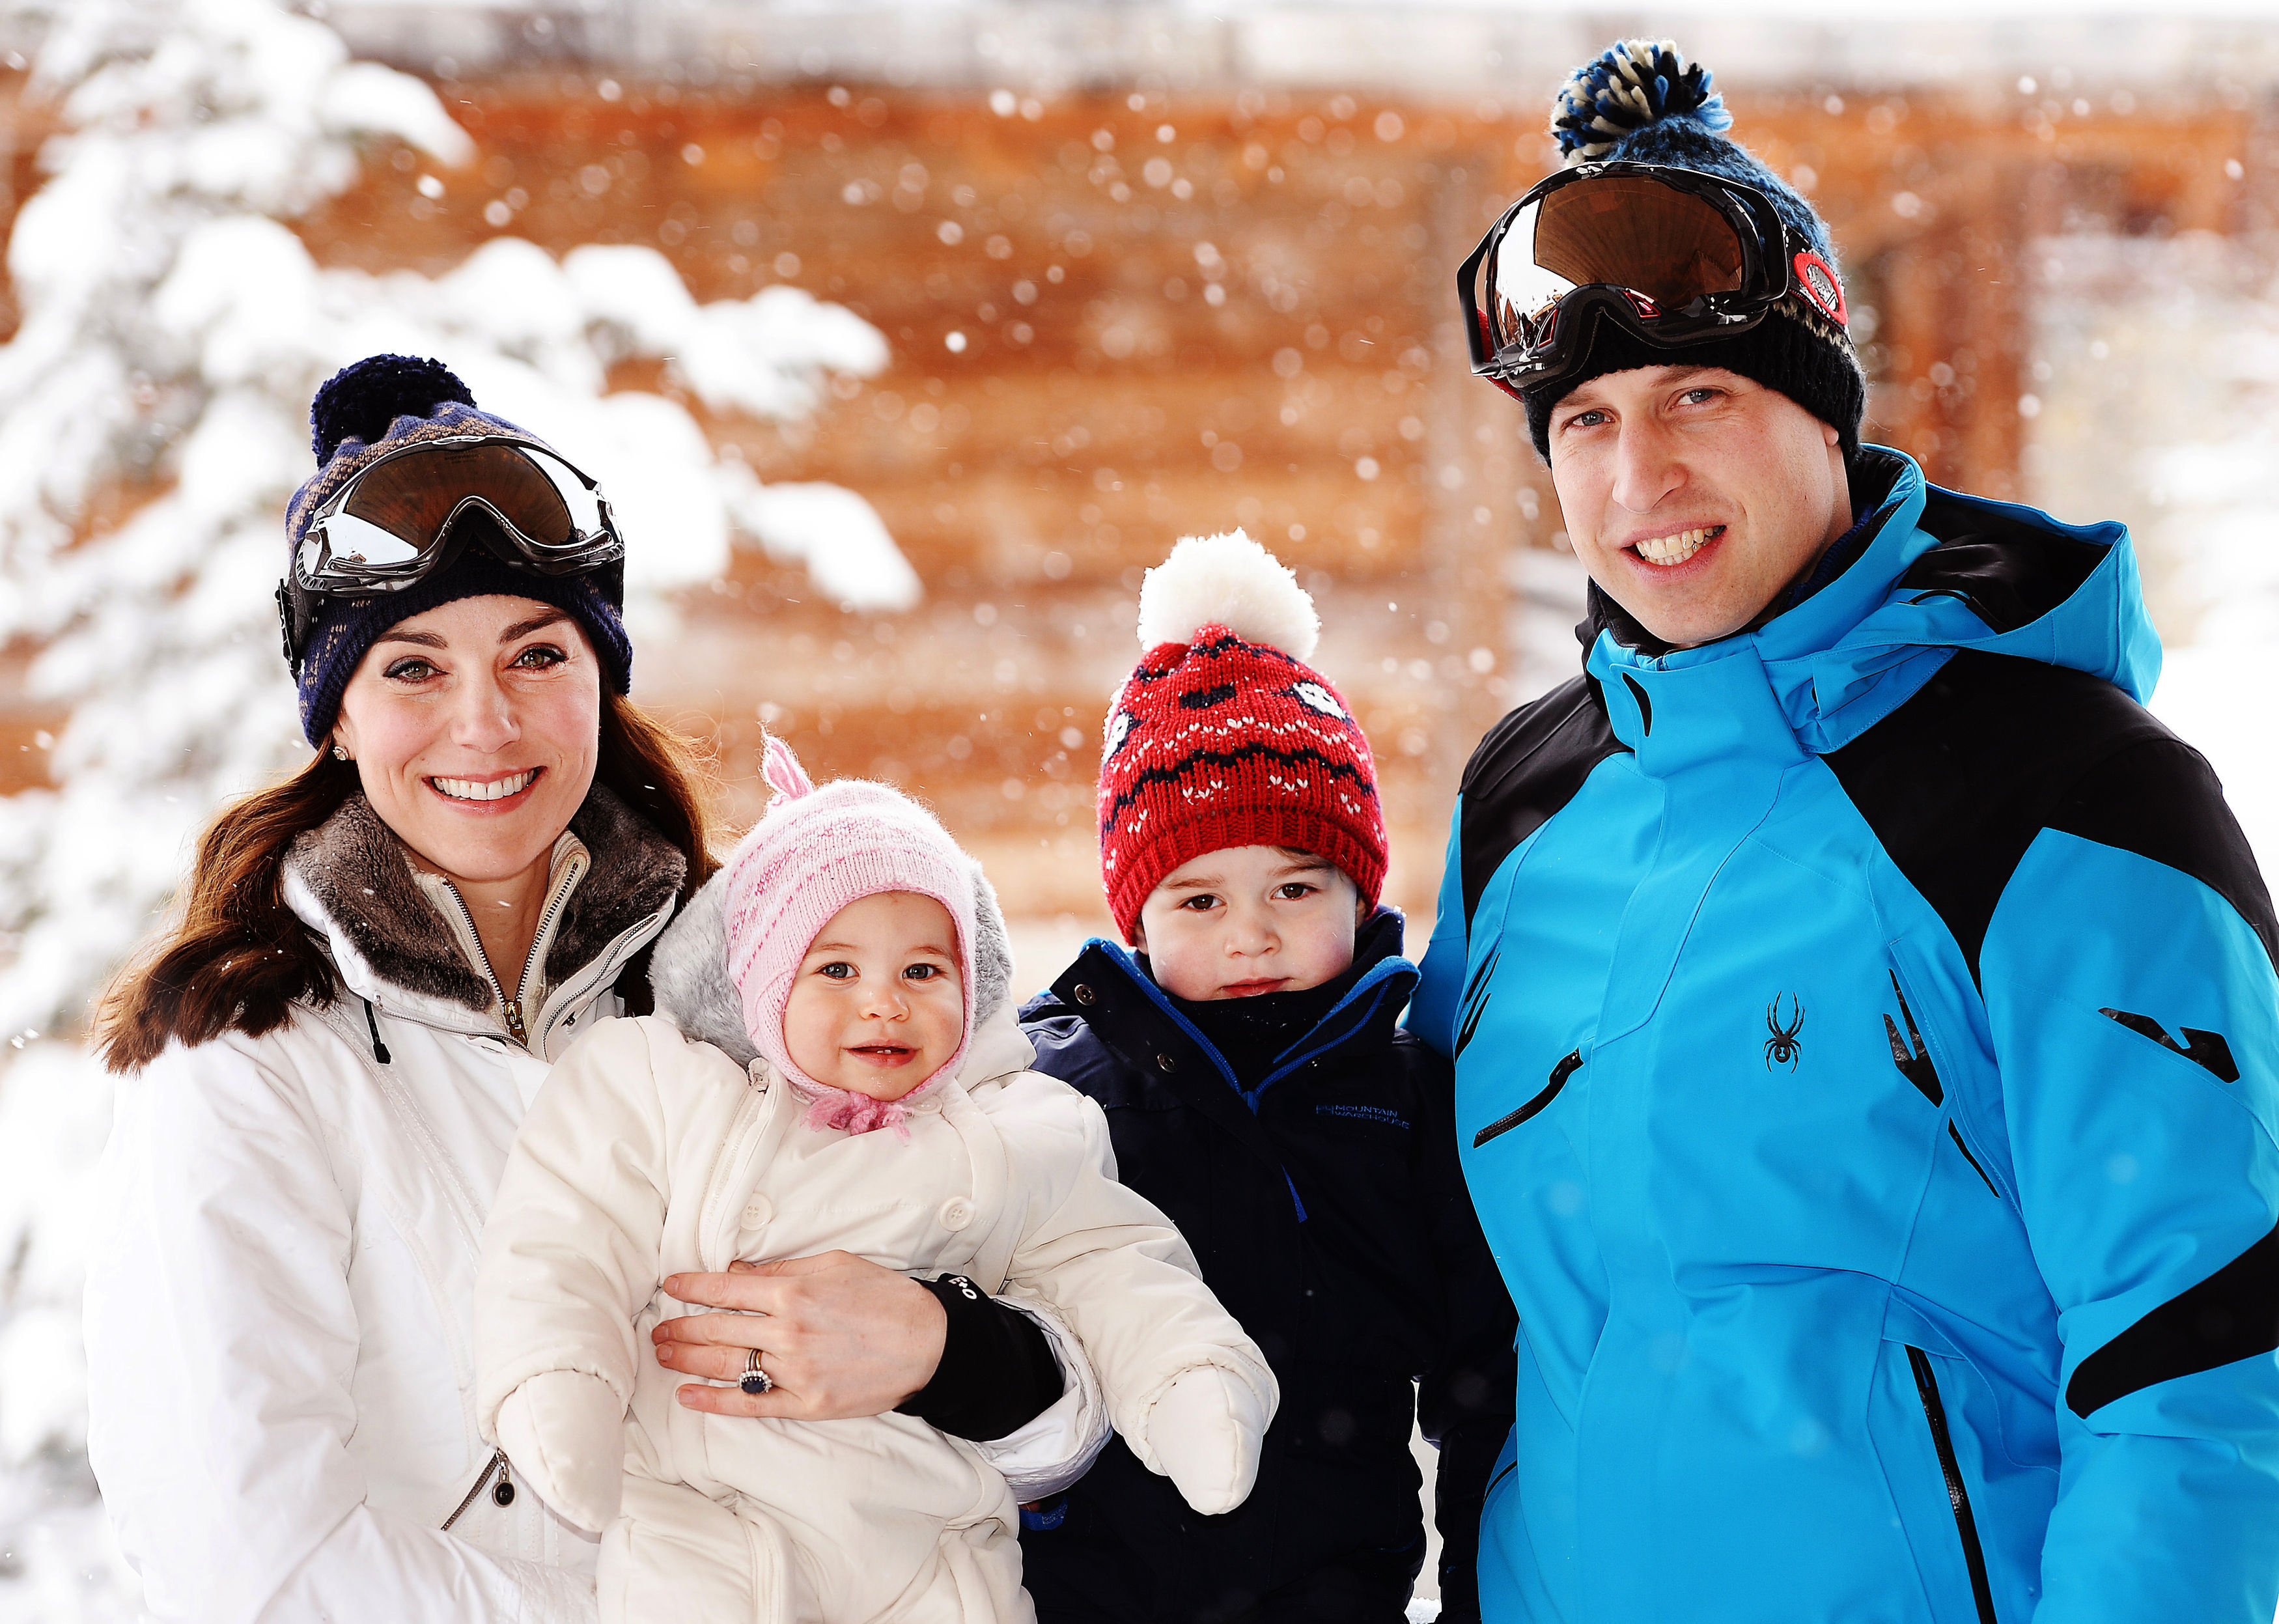 Britain's Catherine, Duchess of Cambridge and Prince William, Duke of Cambridge, pose with their children, Princess Charlotte and Prince George during a private break skiing in the French Alps on March 3, 2016.